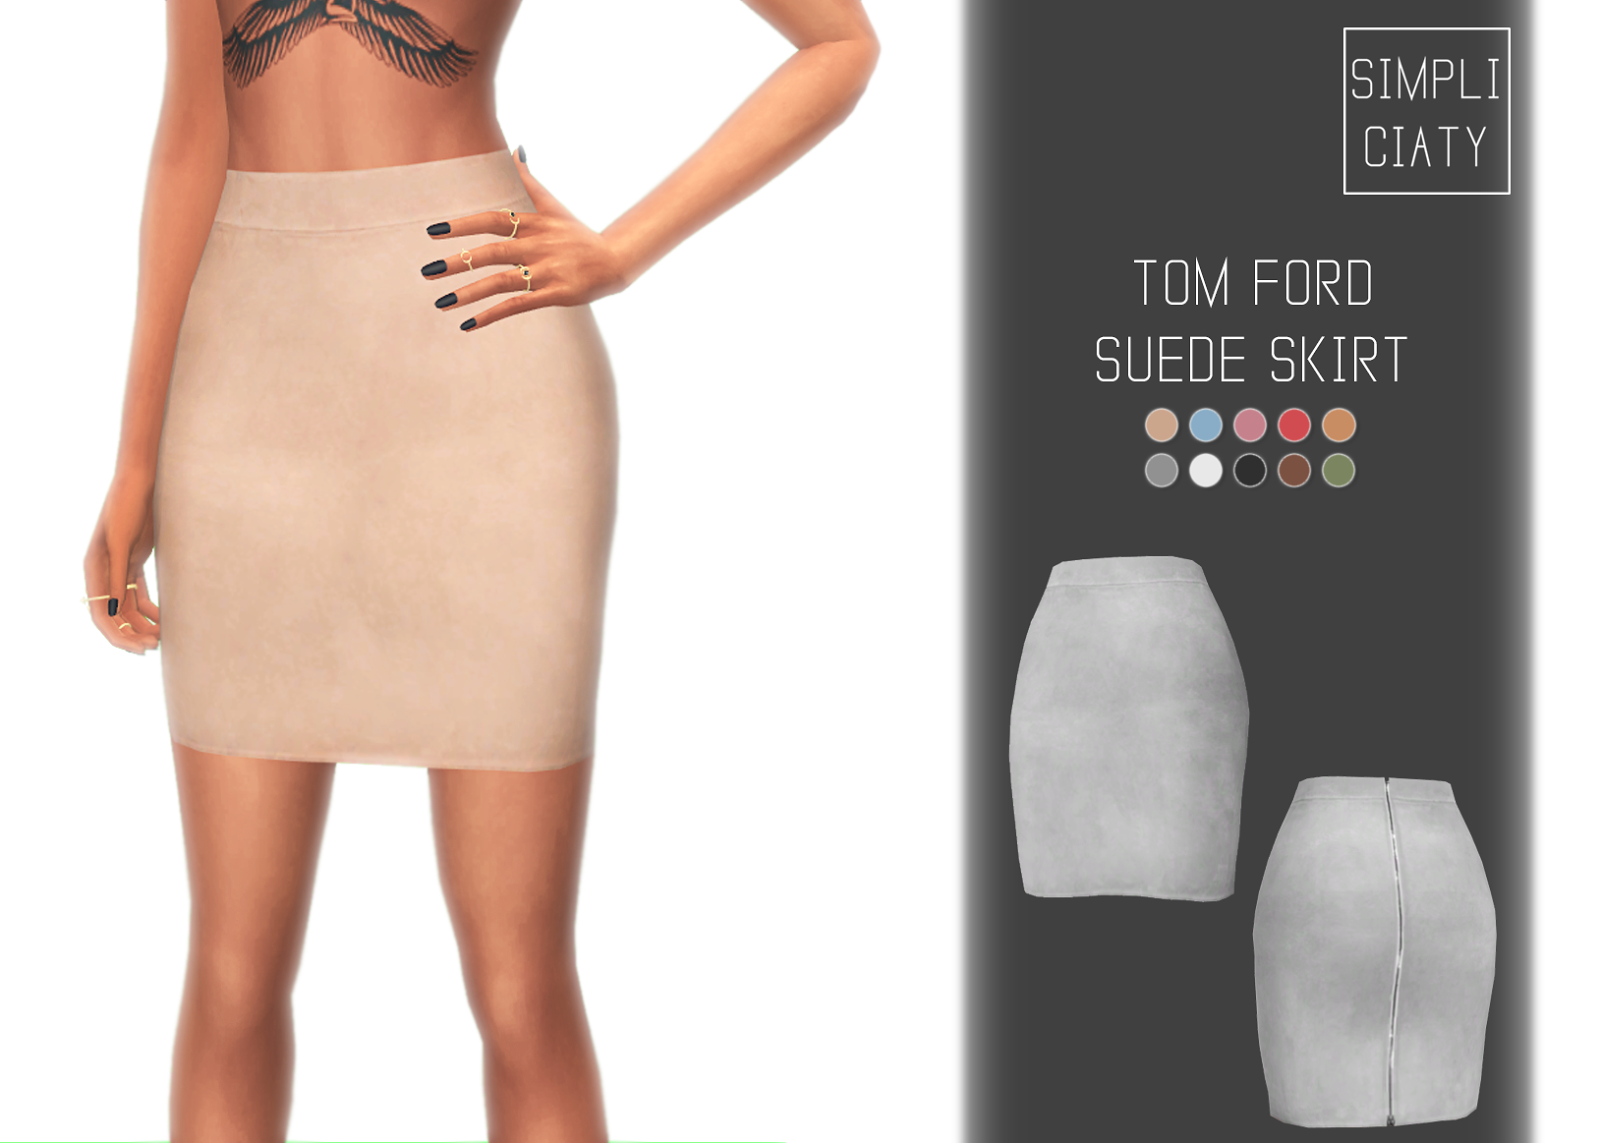 Tom Ford Suede Skirt Simpliciaty